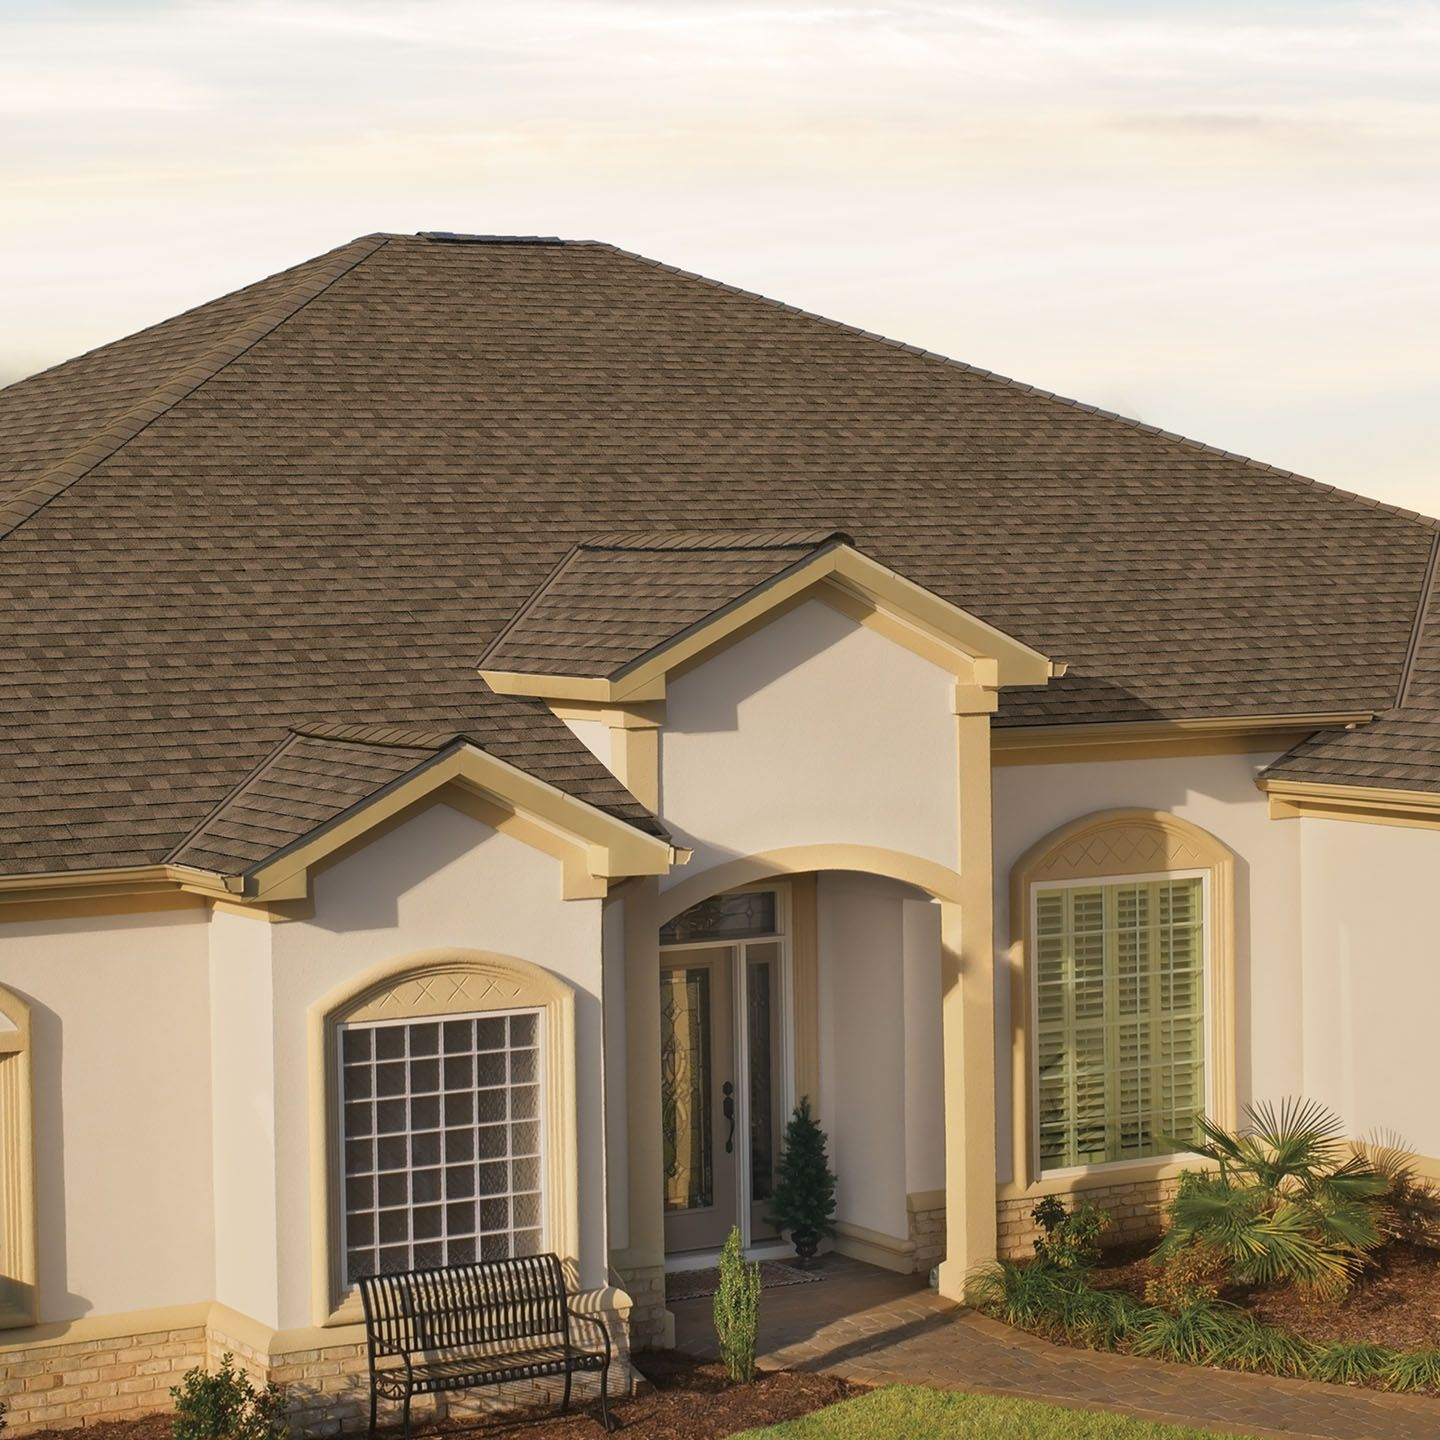 Gaf Timberline Reflector Series Roofing Shingles Roof Shingles Shingling Roofing